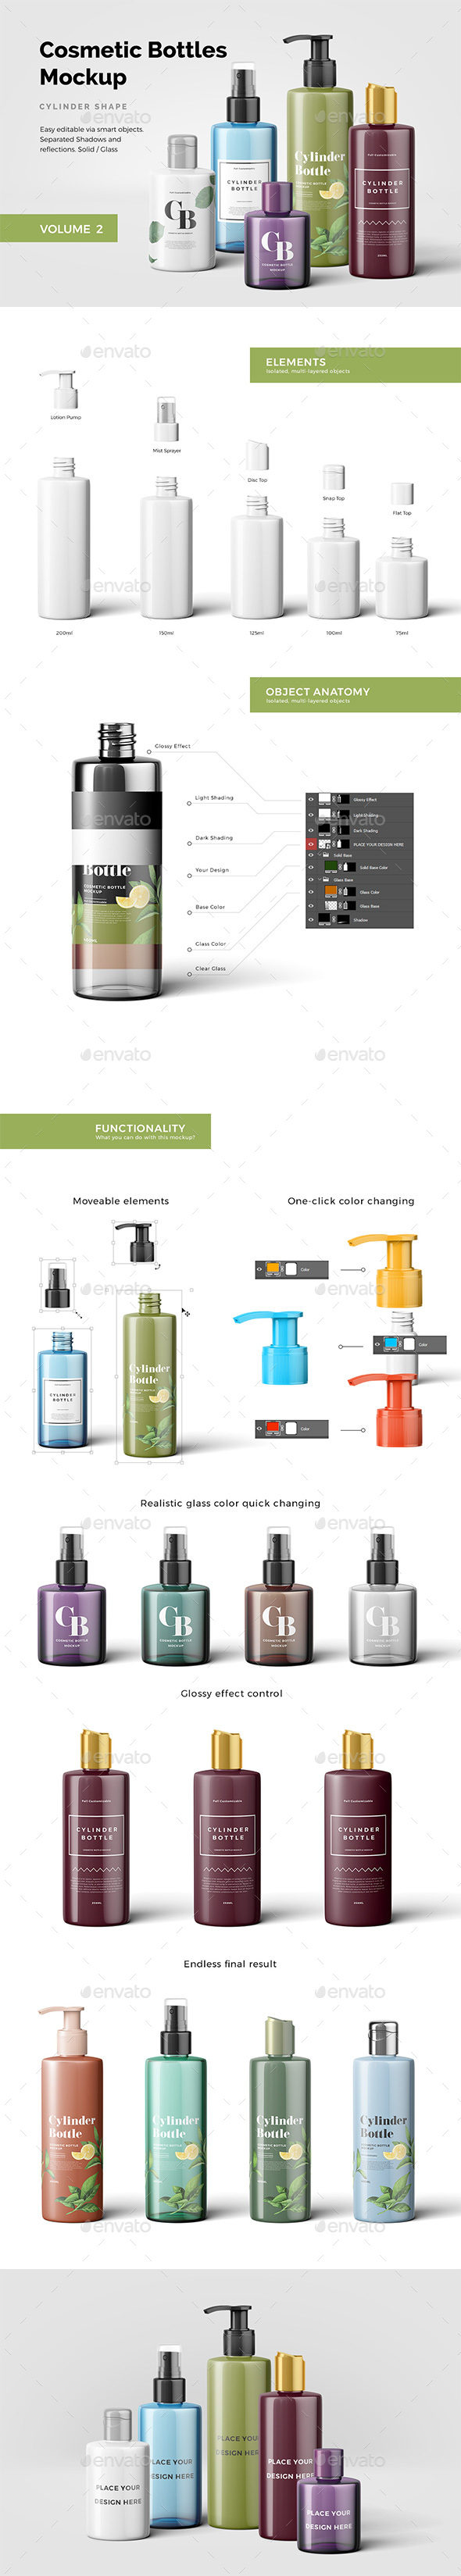 GraphicRiver Cosmetic Bottles Mockup Vol.2 20855870